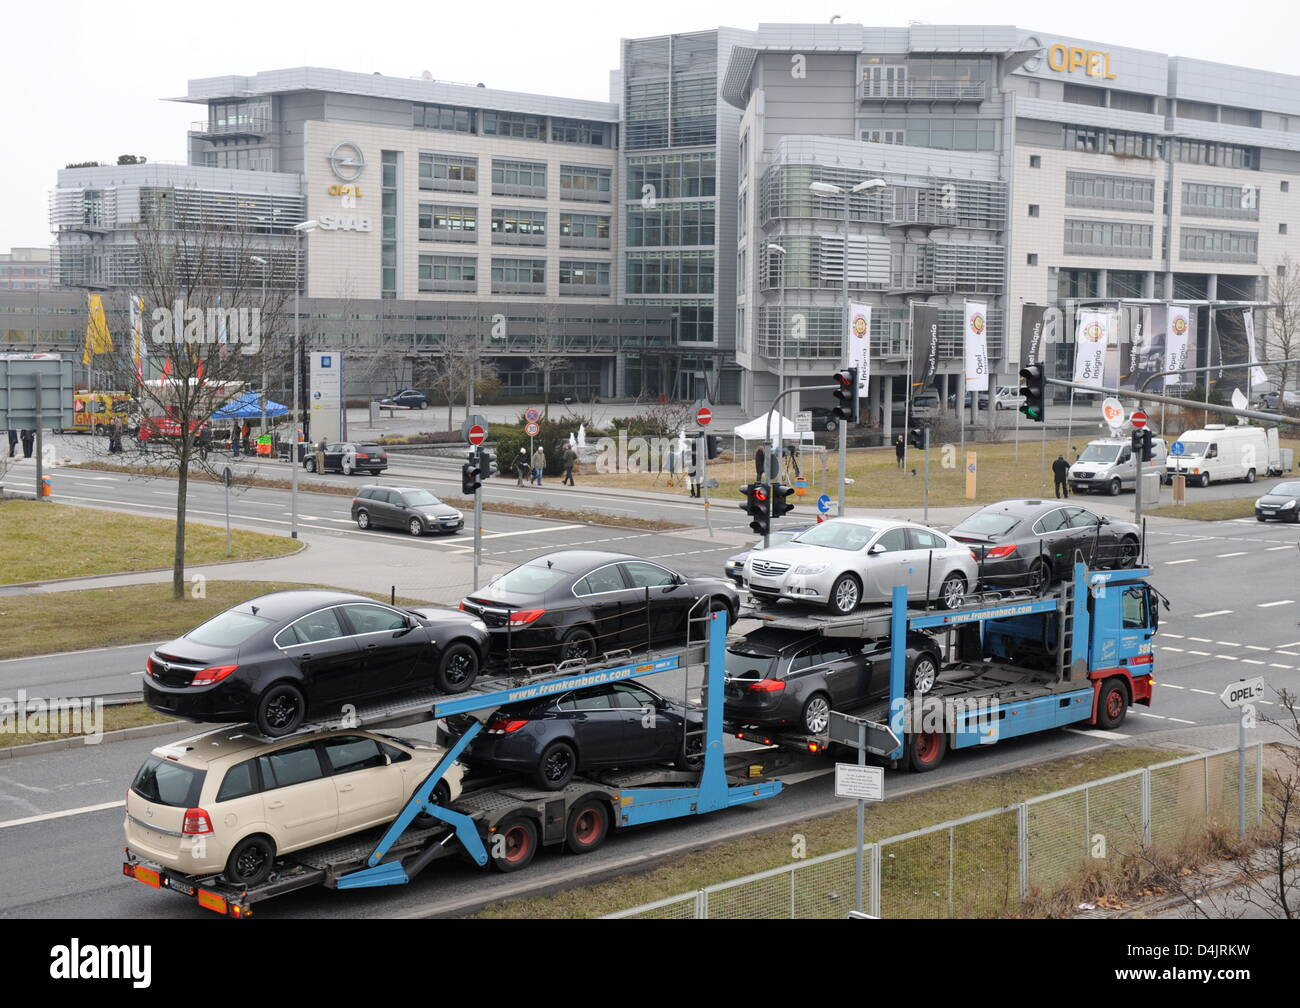 A car transporter with new Opel cars drives past the Opel